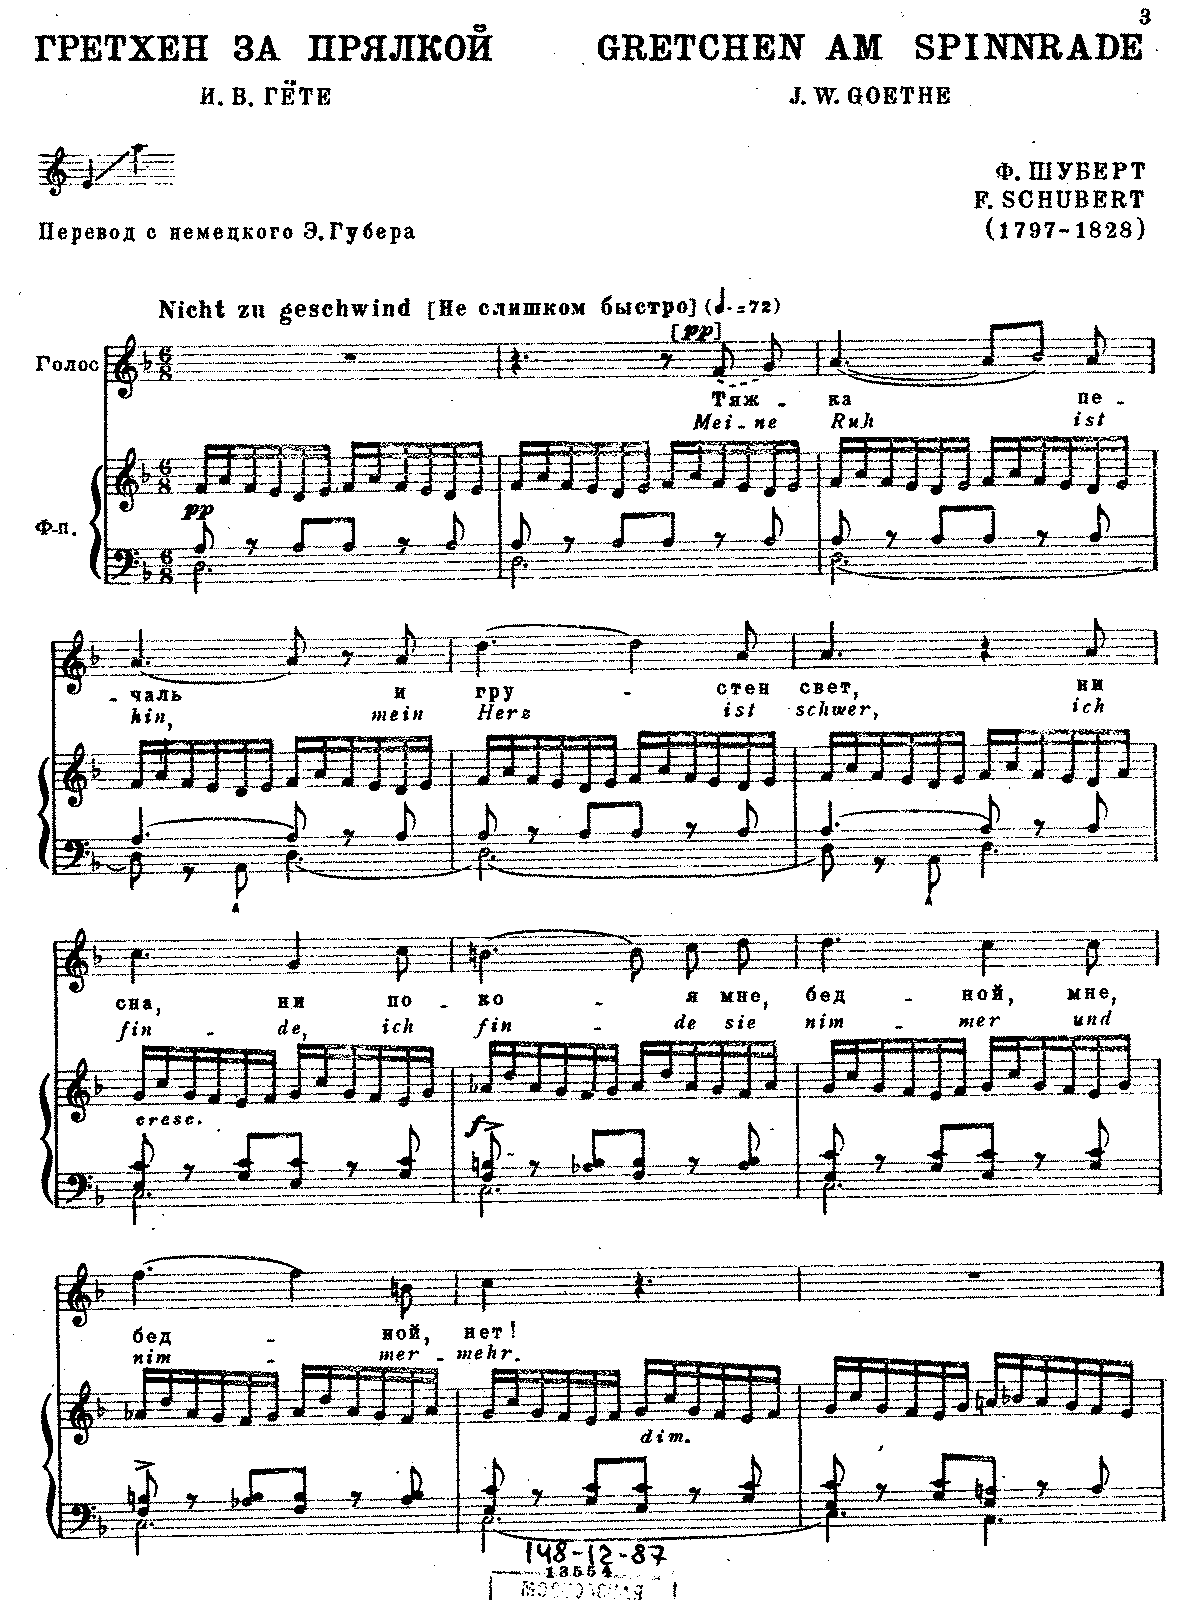 PMLP25880-Schubert Gretchen Am Spinnrade Muzyka.pdf